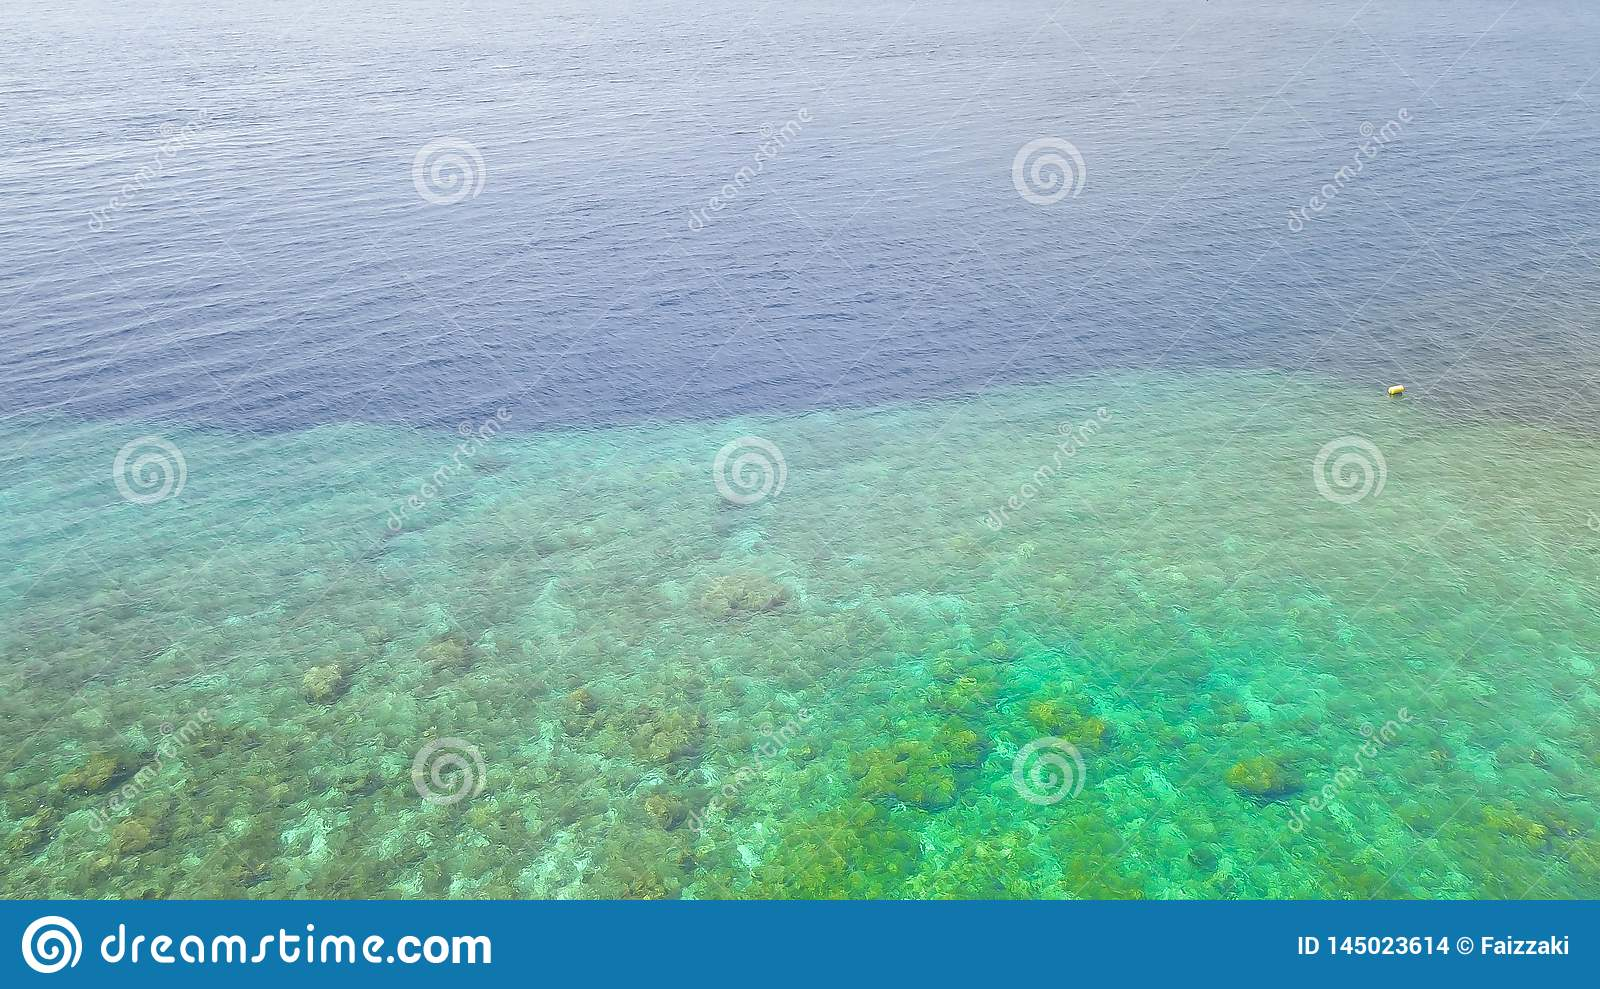 Beautiful nature of blue sea sand and Turquoise color water waves